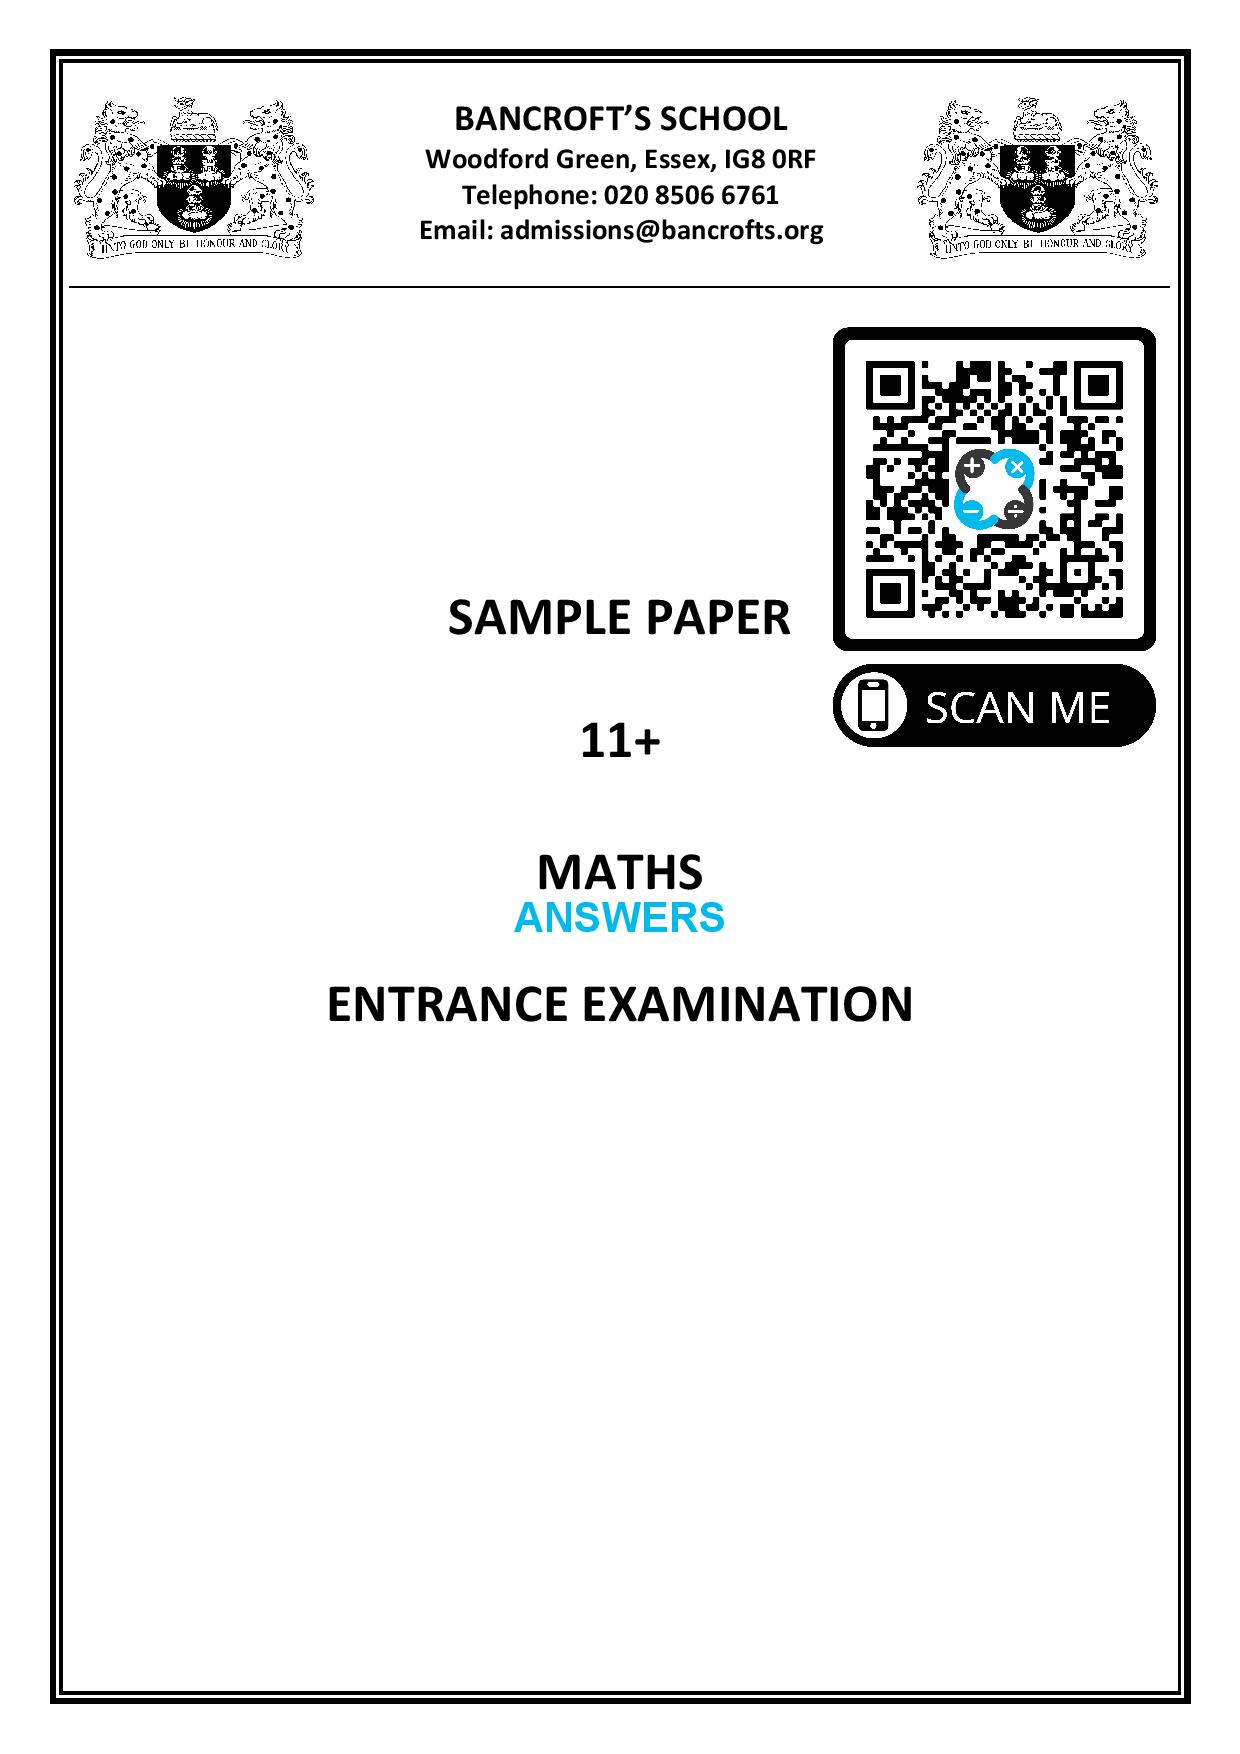 Bancrofts School Sample Paper 11 Maths Entrance Examination Answer Paper page 001